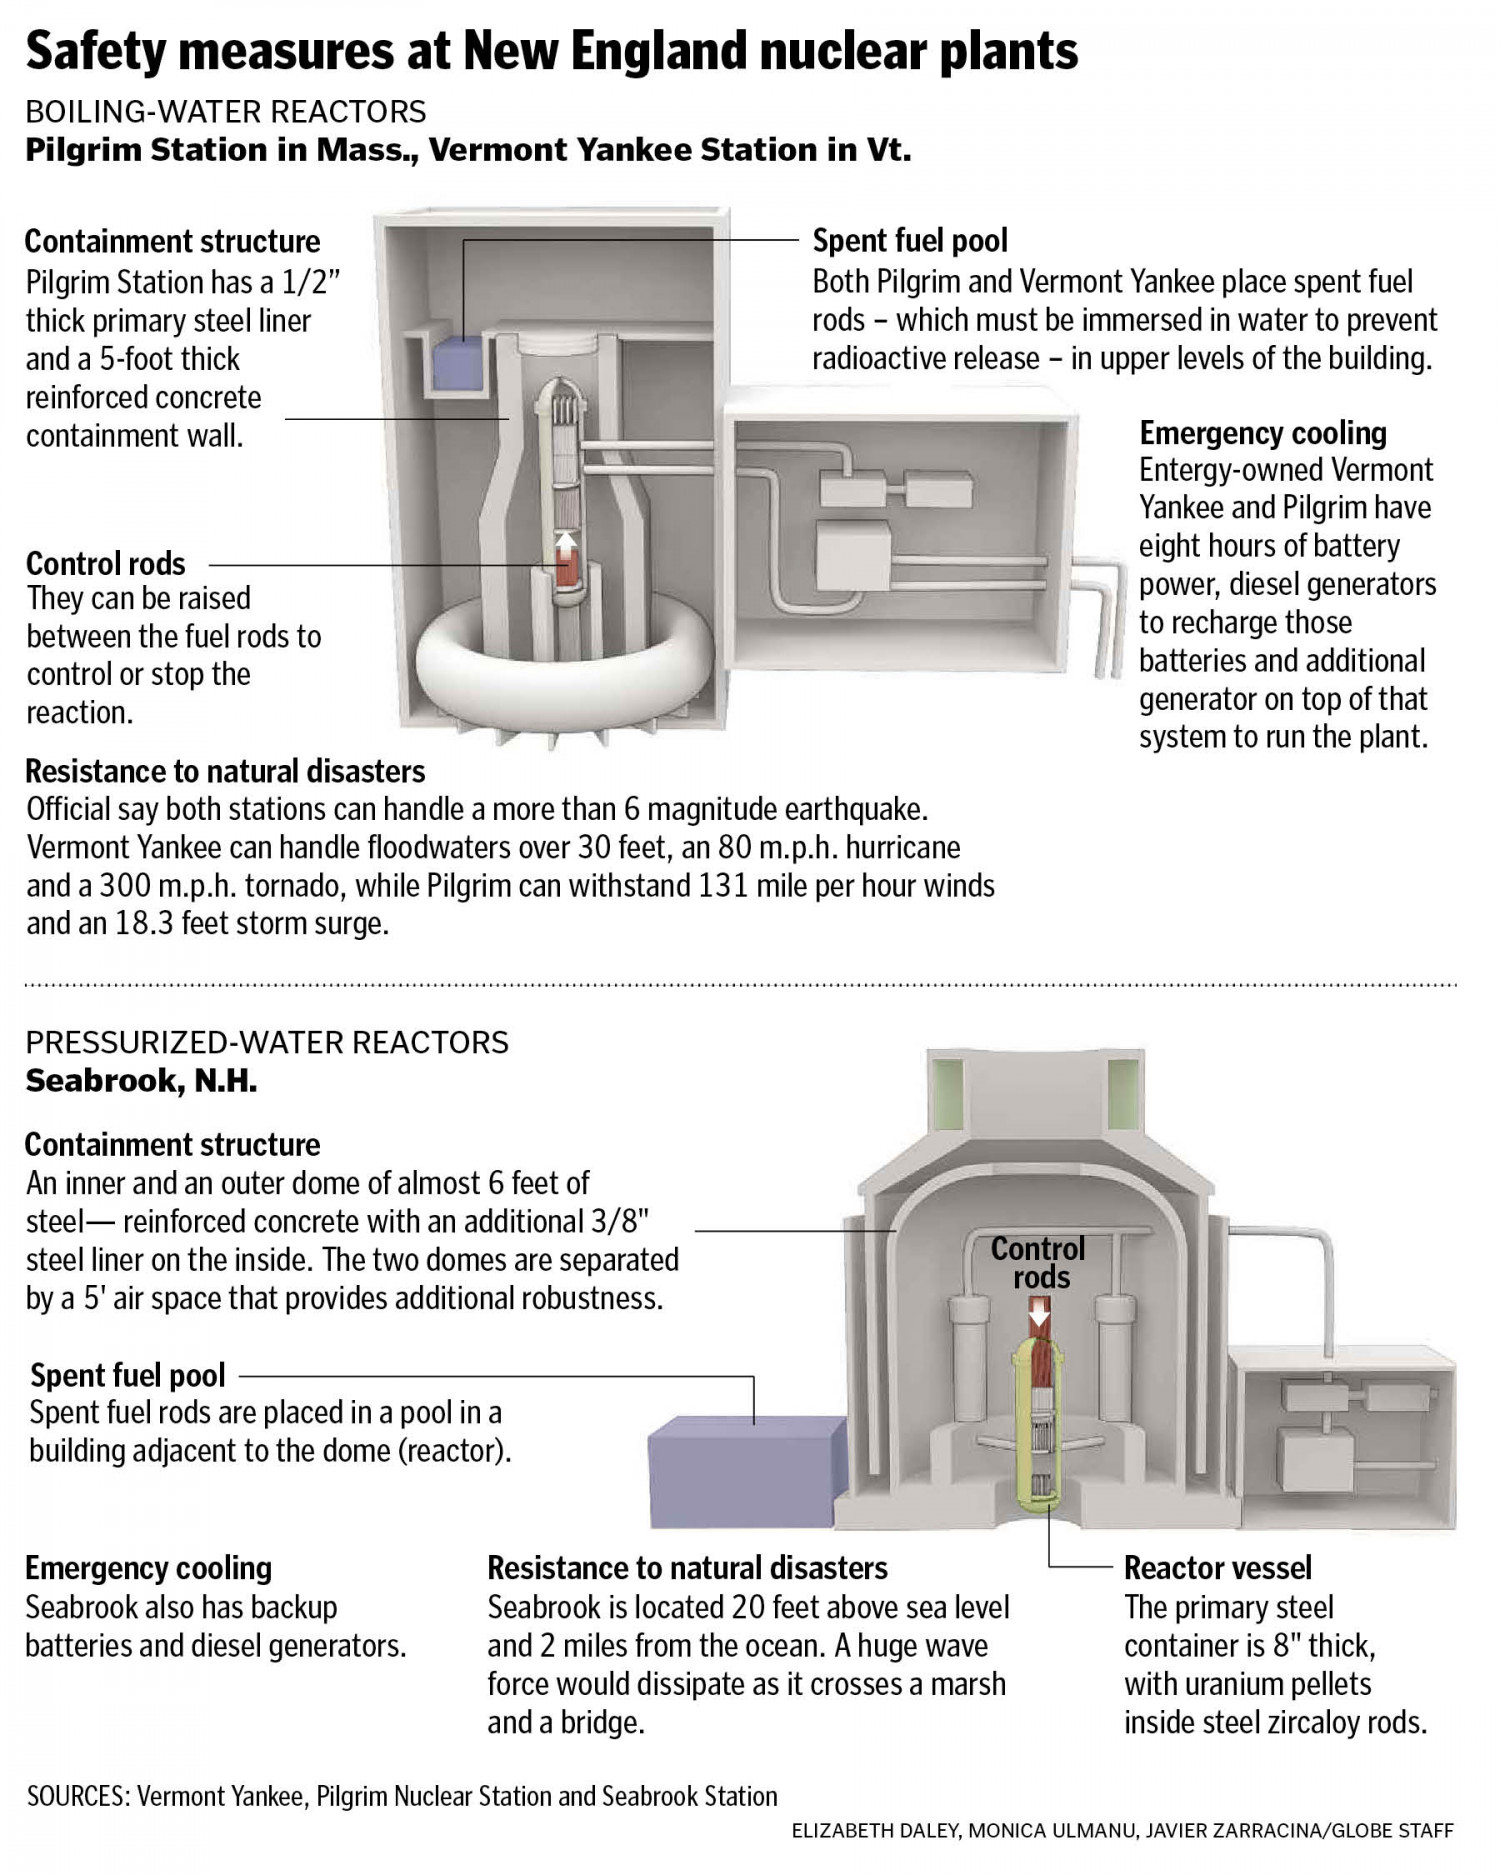 Safety Measures at New England Nuclear Plants Infographic